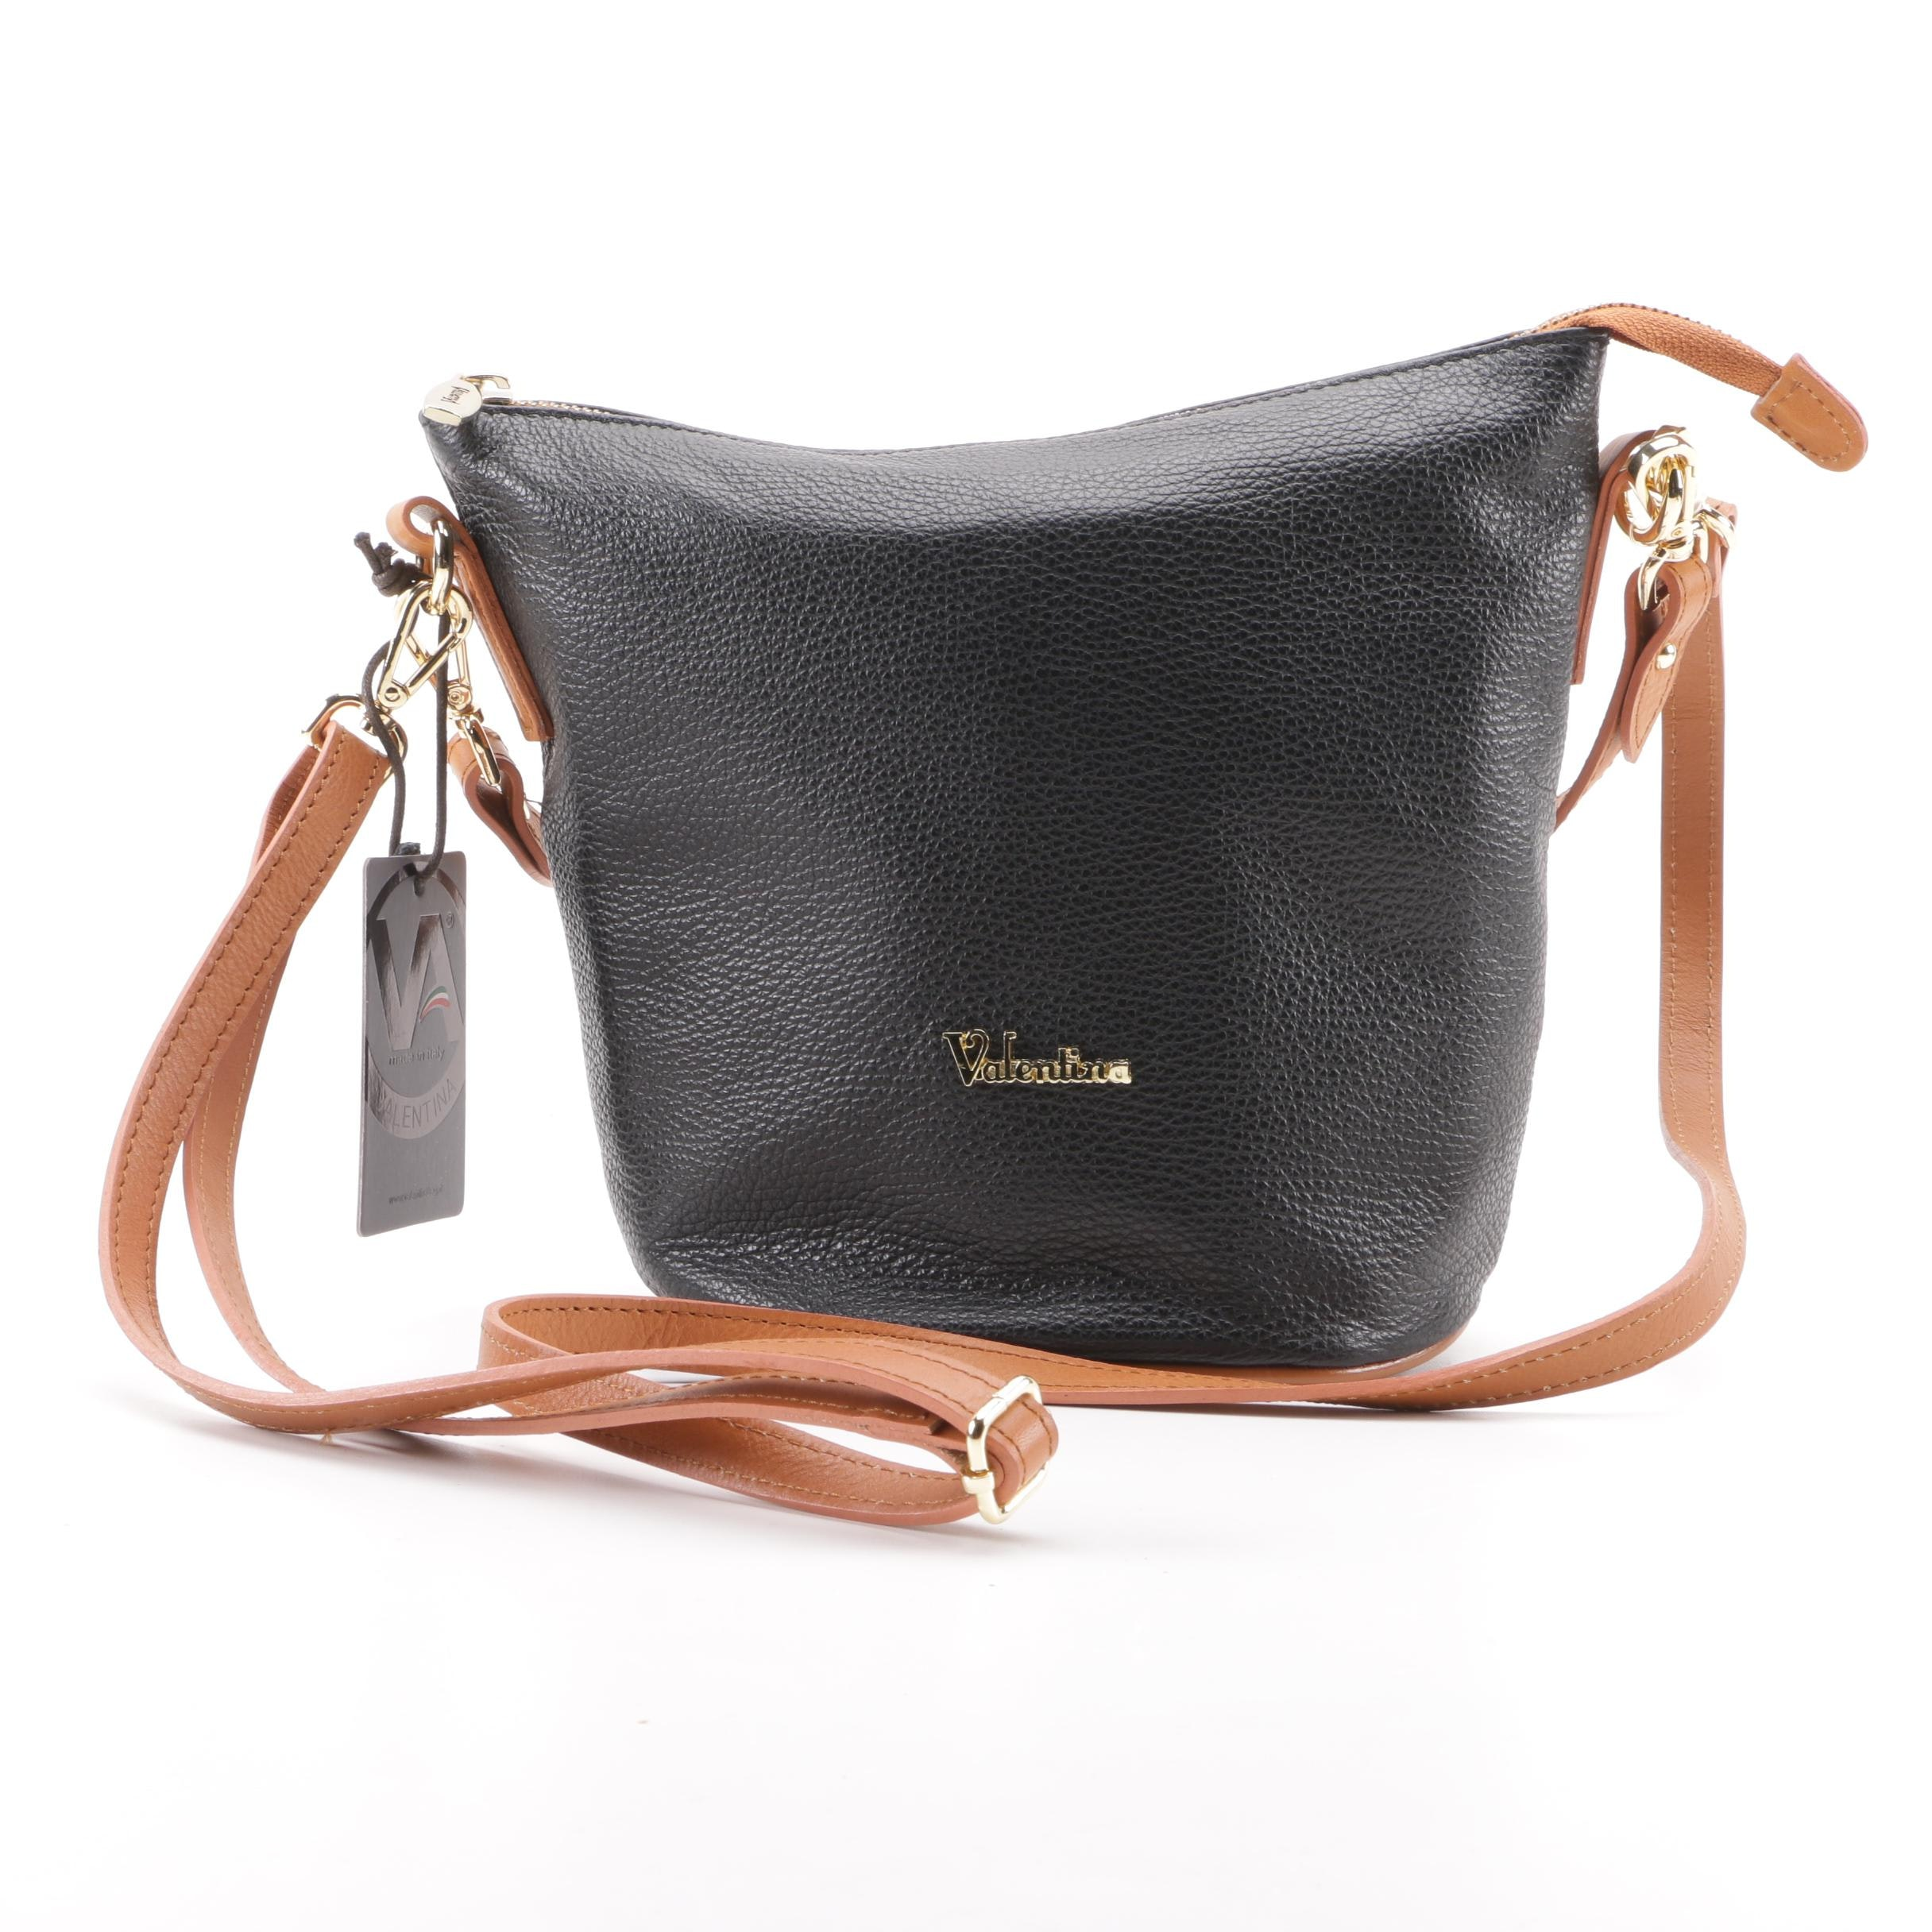 Valentina Black Pebbled and Tan Leather Shoulder Bag, Made in Italy